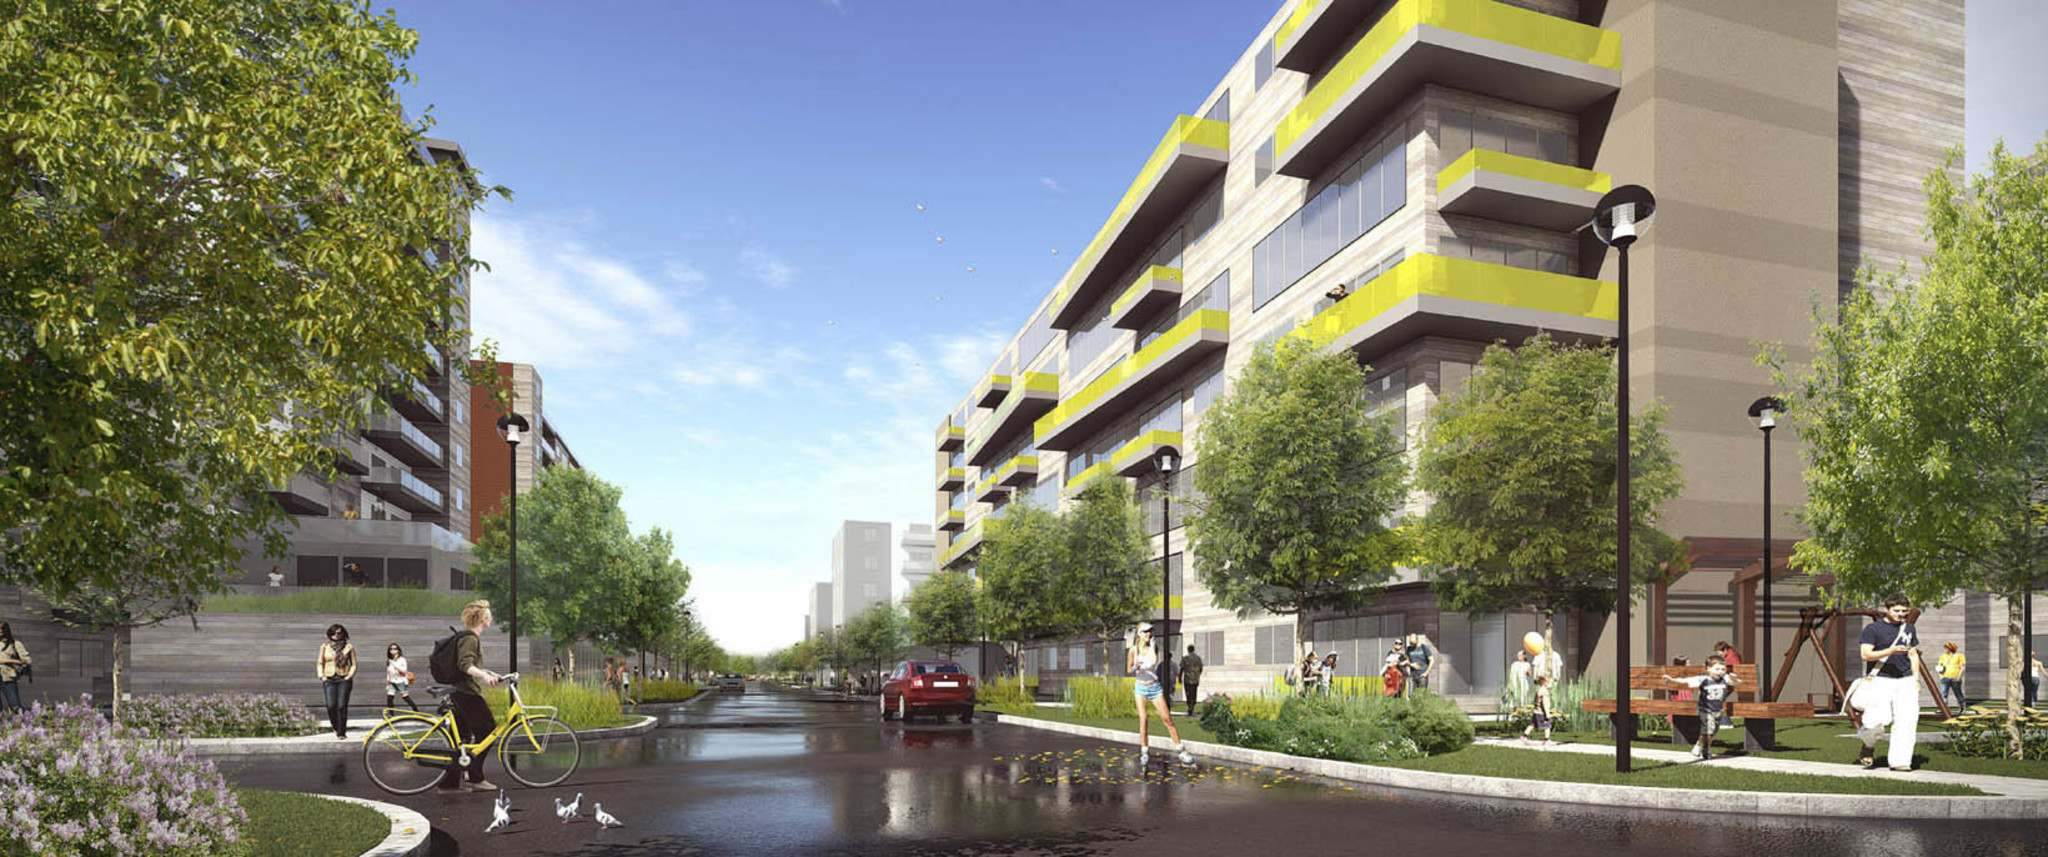 FULTONGROVE.CA</p><p>Fulton Grove - a proposed residential development on the Parker lands by Gem Equities, a development company owned by Andrew Marquess.</p>